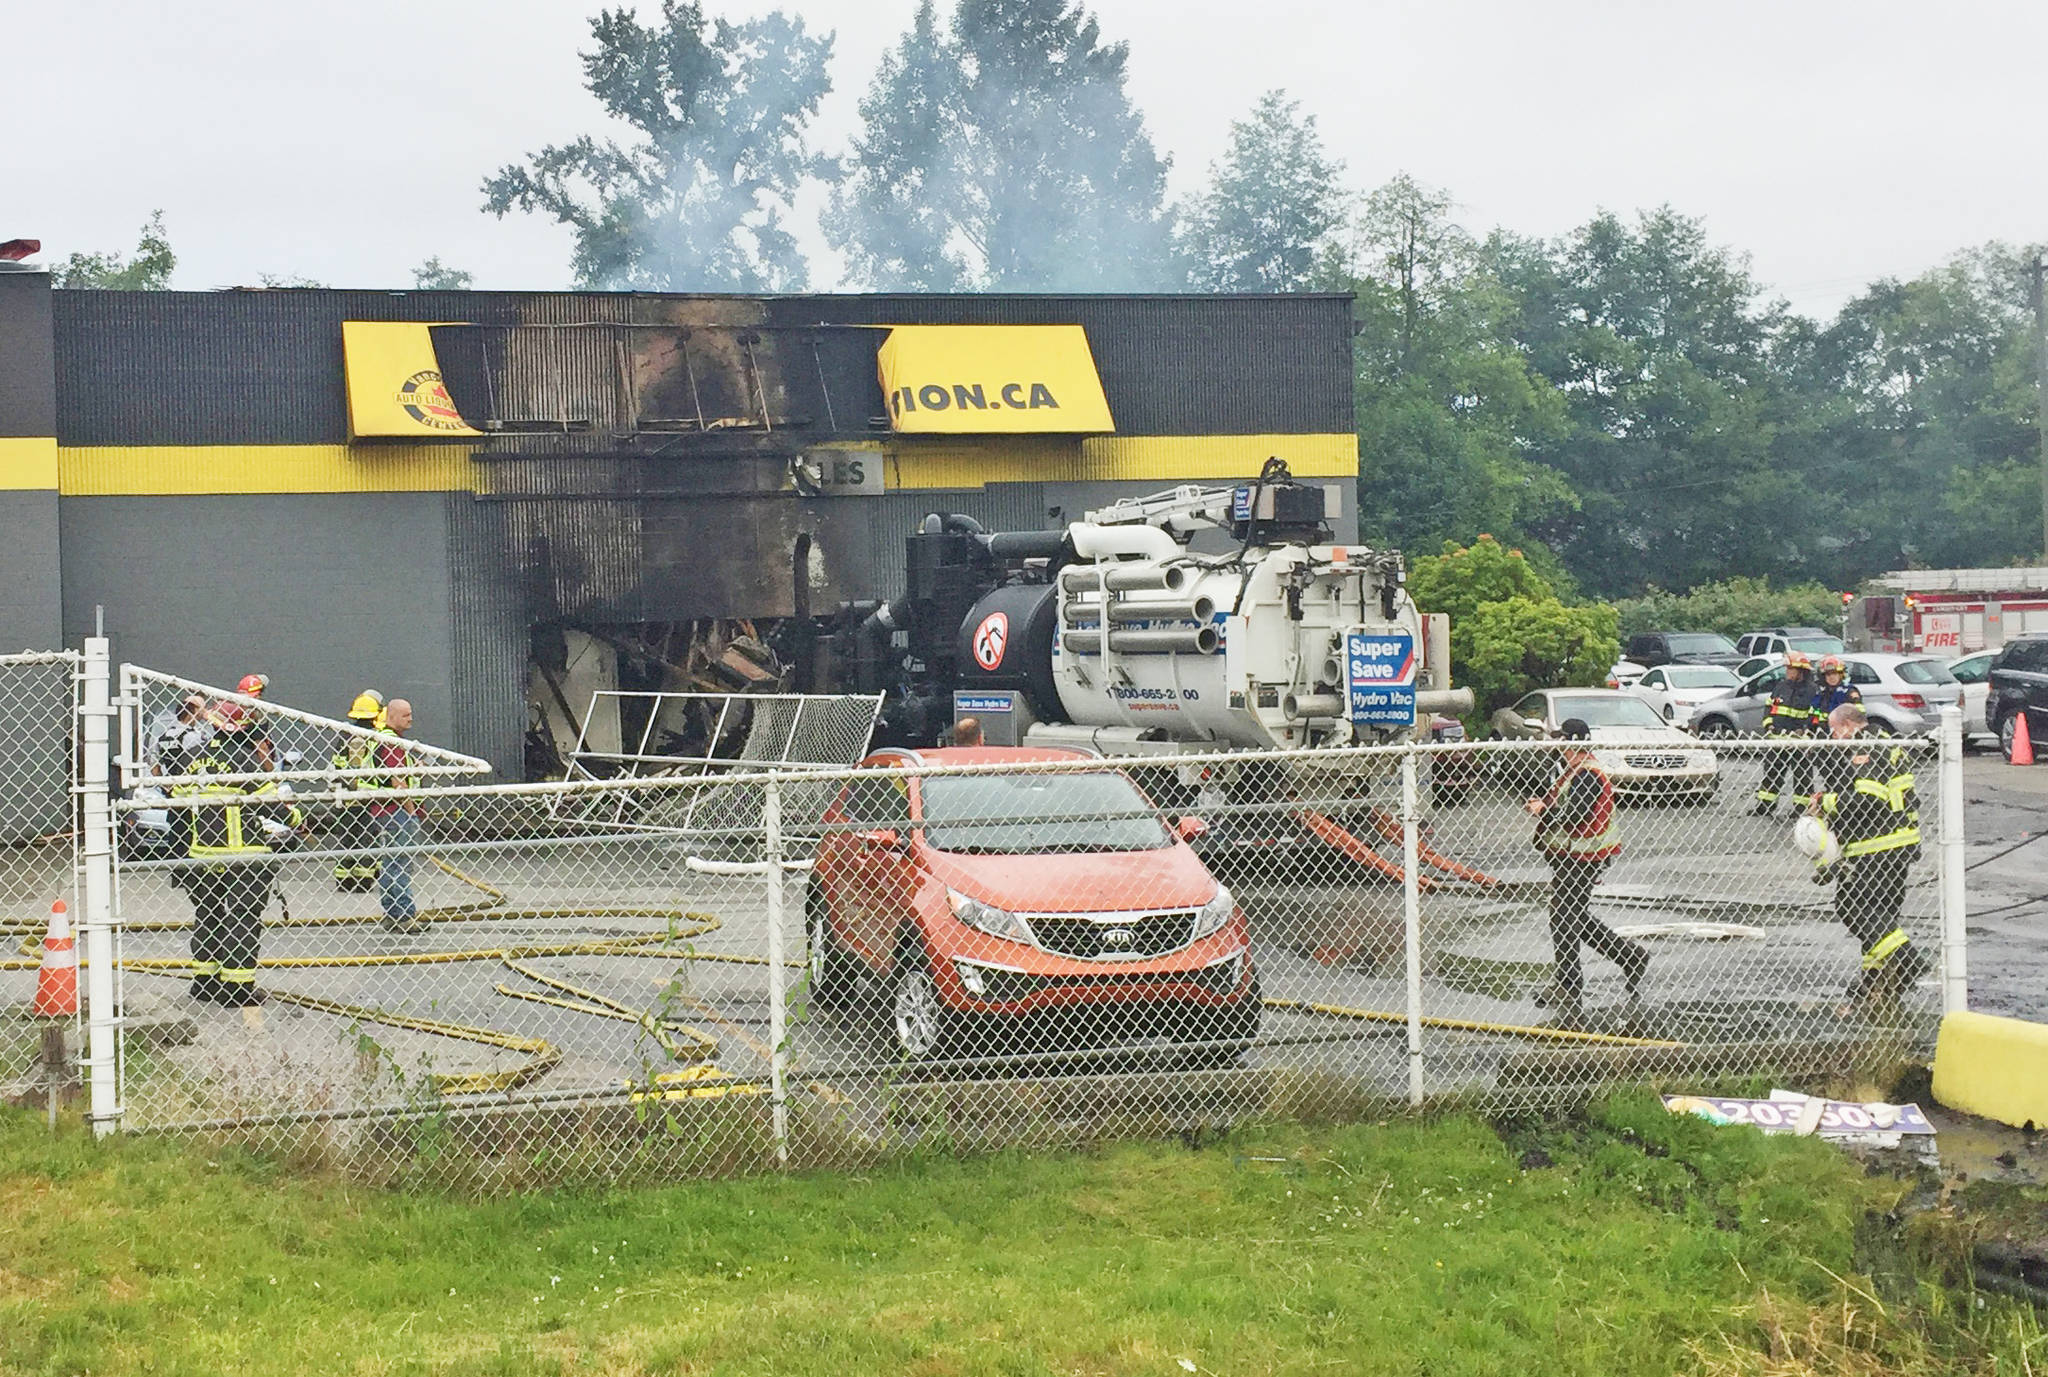 A stolen Super Save truck was driven through the front wall of a Langley City auto dealership overnight Wednesday, causing both the truck and the building to burst into flames. City fire crews were called out around 2:45 a.m. and required help from Township fire department to extinguish the fire, which did extensive damage to the building. Brenda Anderson Langley Times